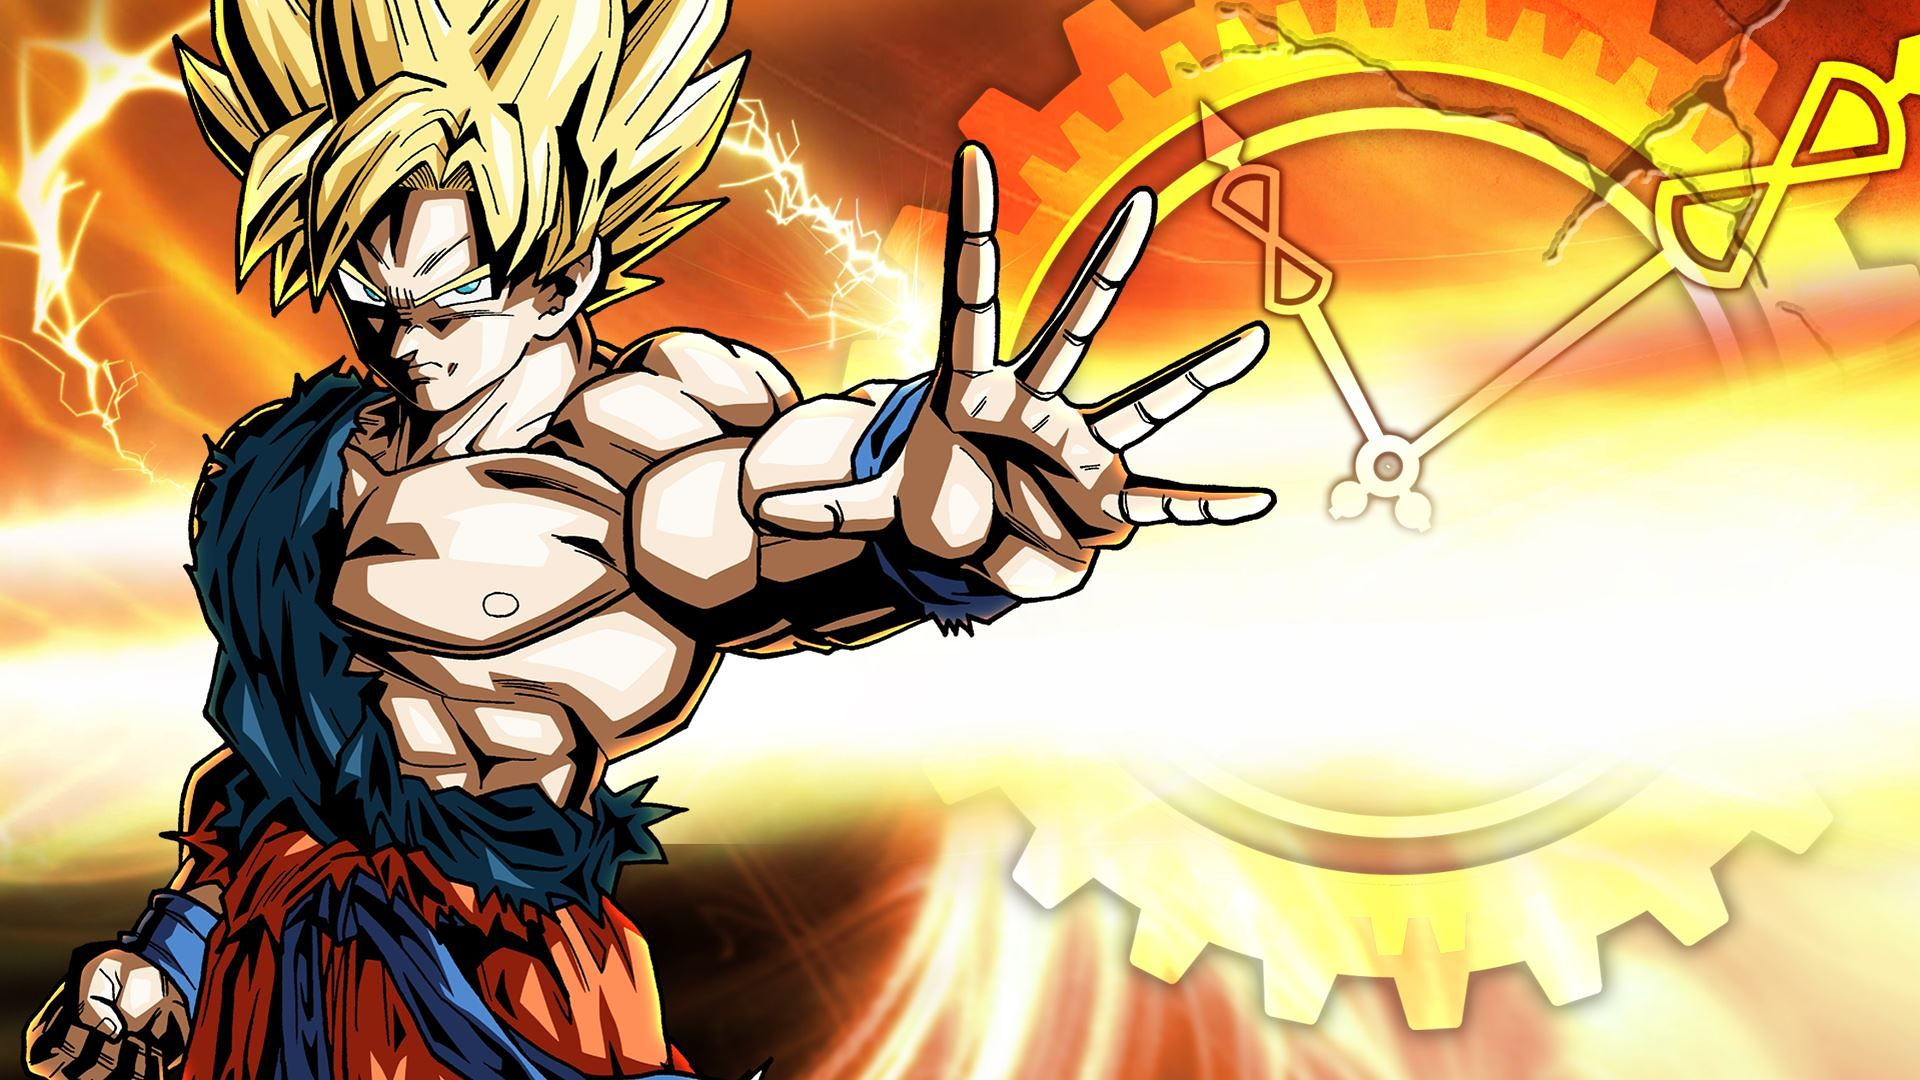 dragon ball z after xenoverse here s what the next super z game needs to fix dragon ba 574377jpg - Dragon Ball Z Image